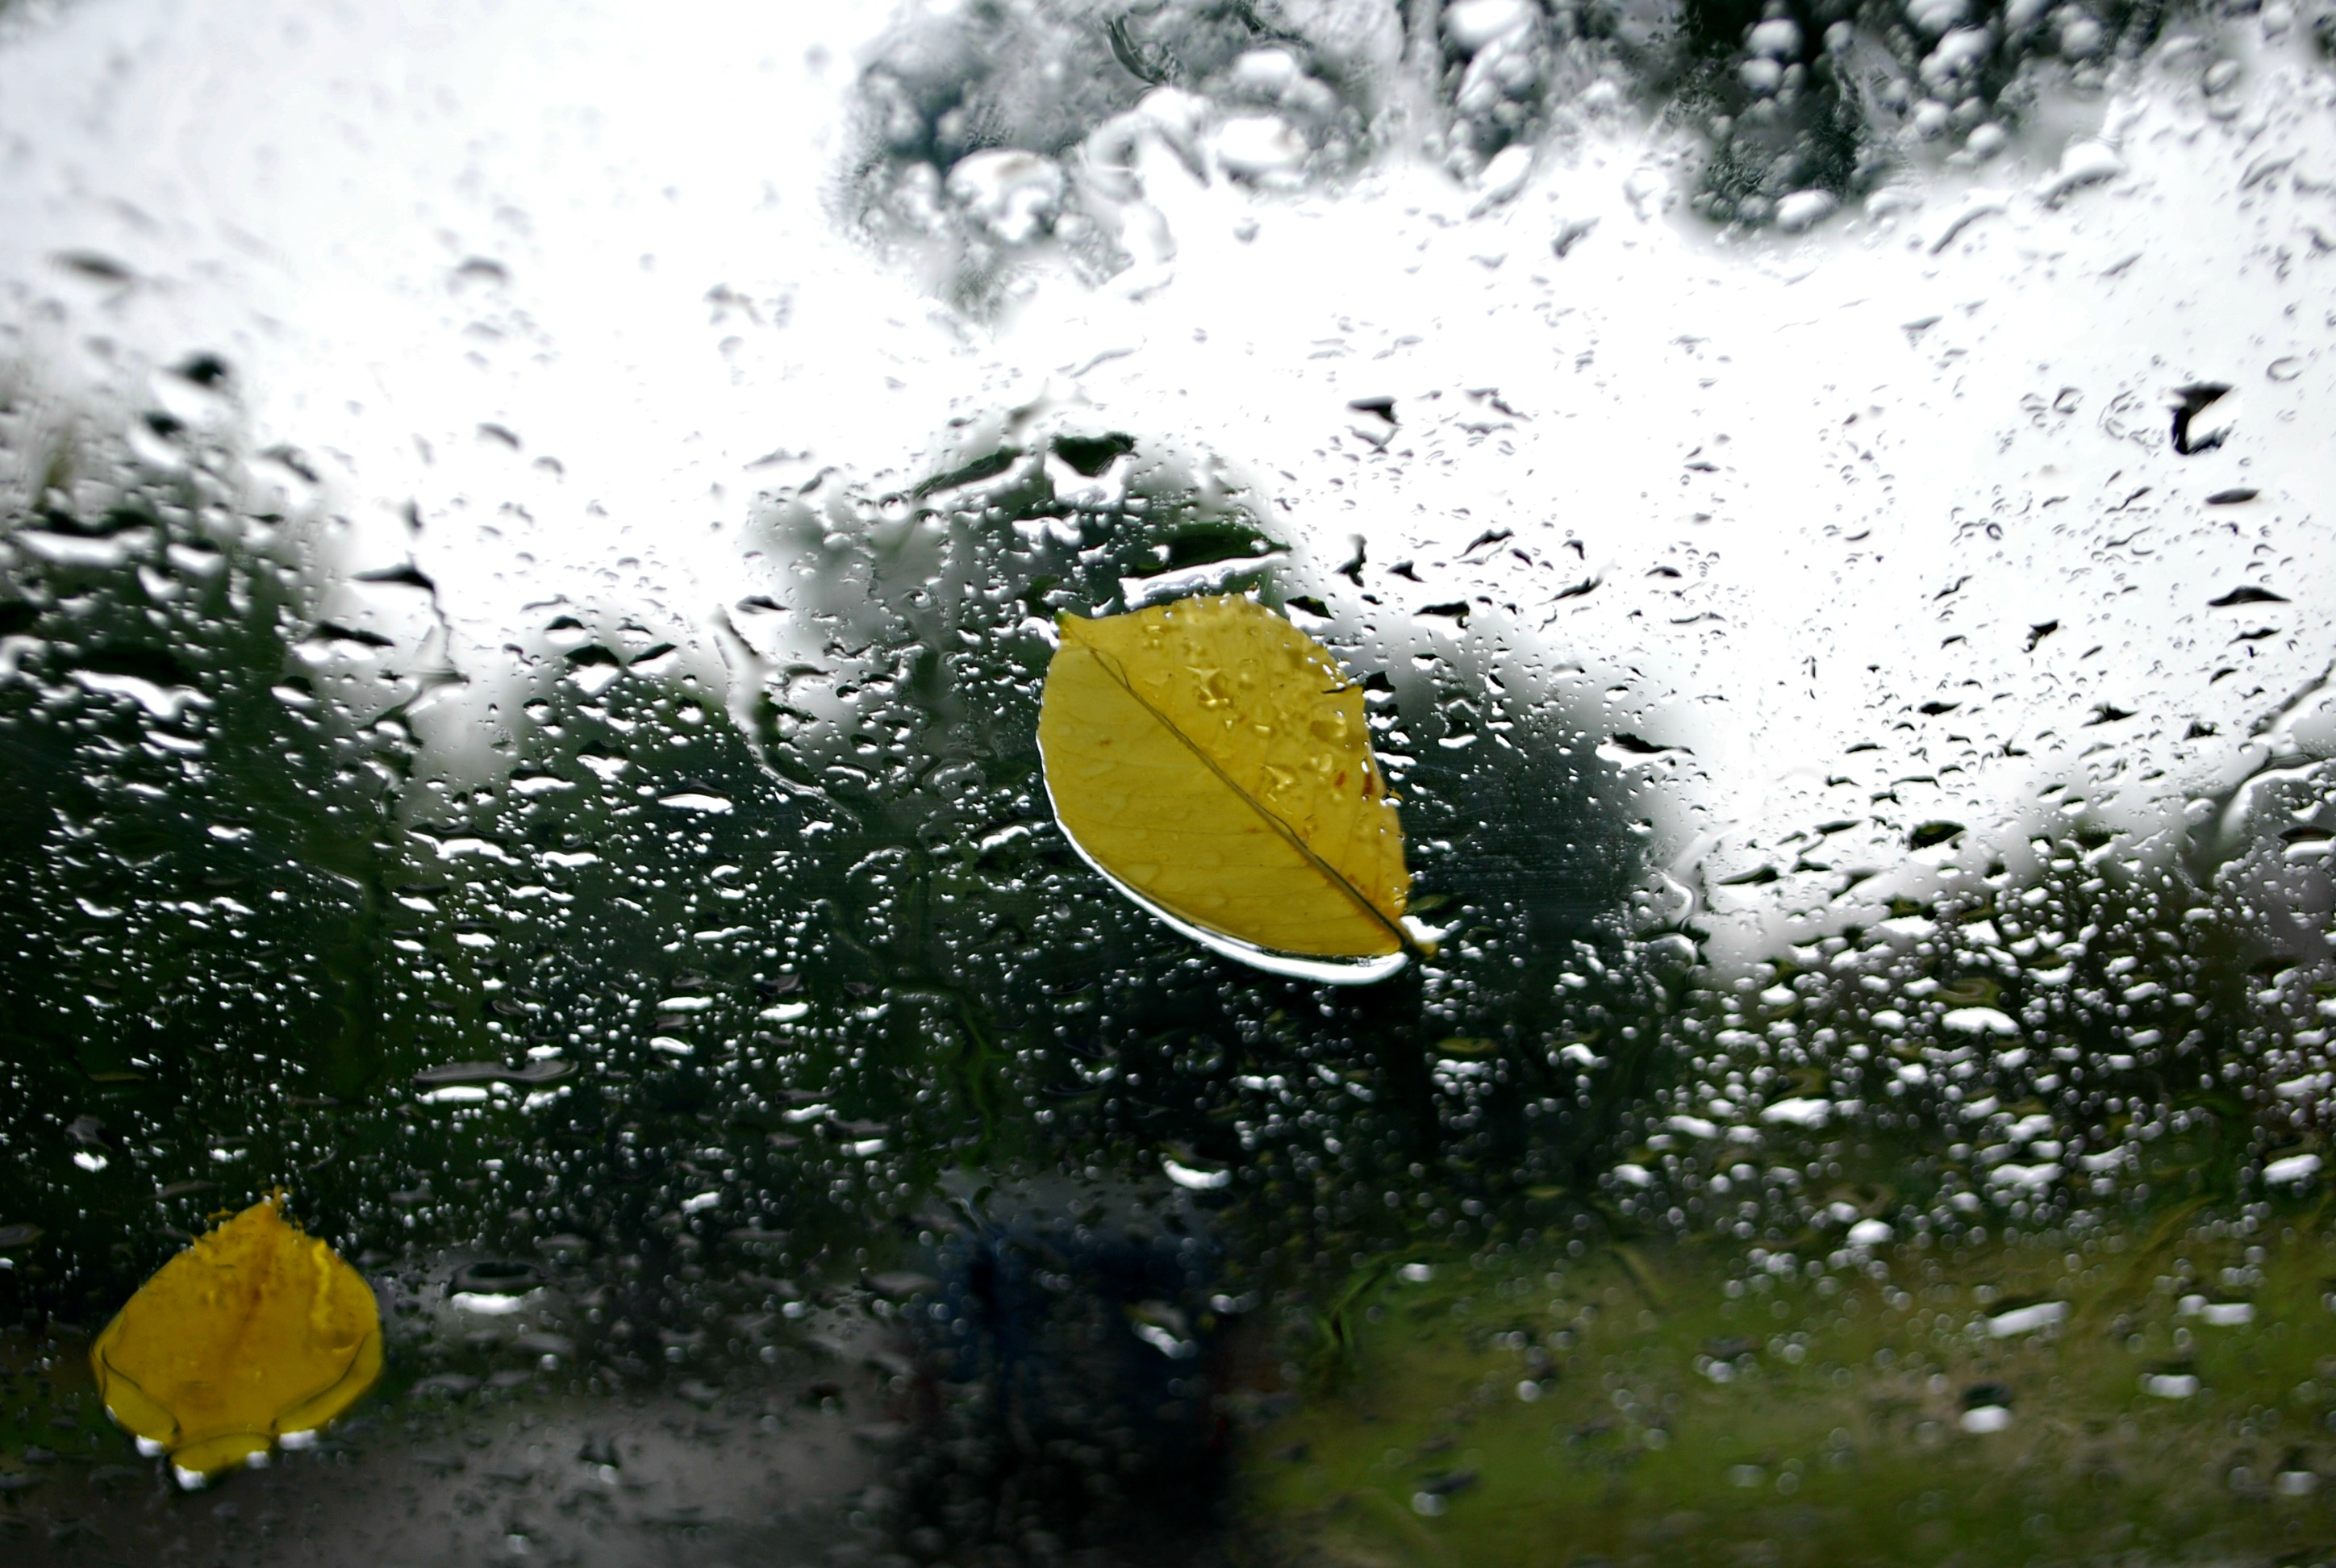 Leaf on Window in the Rain